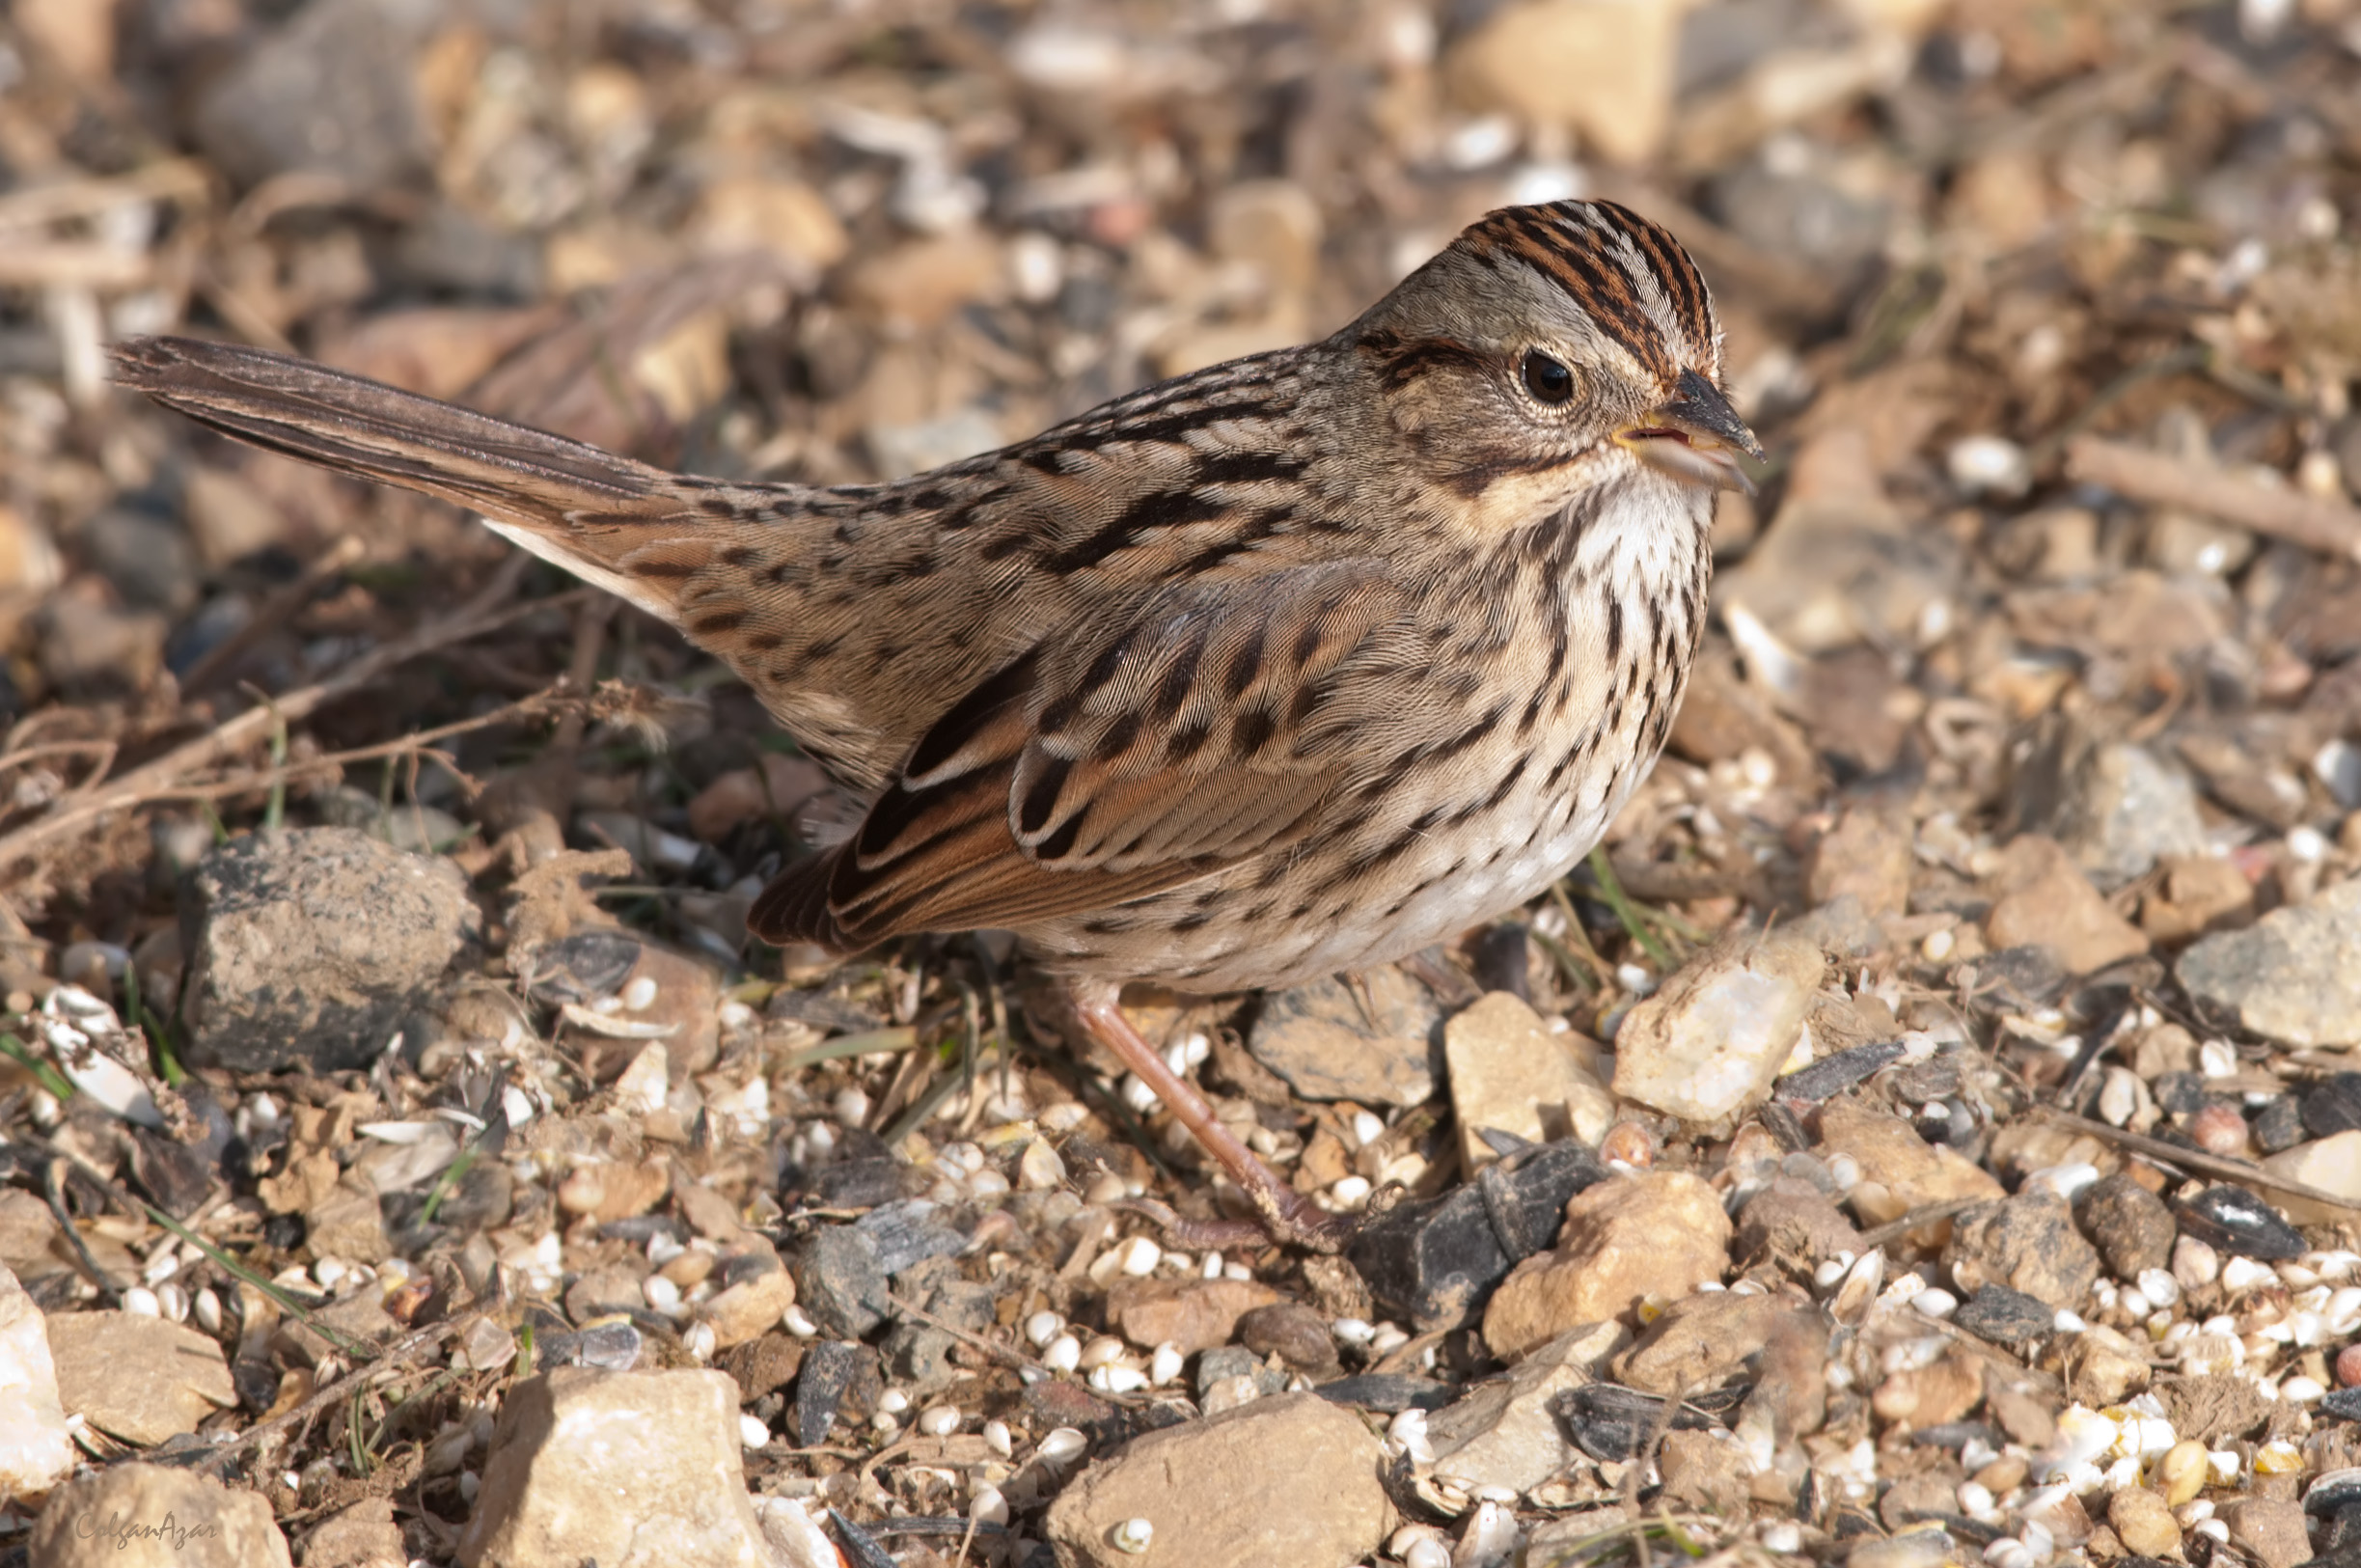 """- Lincoln's Sparrow (Melospiza lincolnii)Lincoln's Sparrows live in shrubby areas and thickets. Their diet consists of insects and seeds. They weigh 0.5-0.7 oz. and are 5.1-5.9 in. long. Lincoln's Sparrows' songs begin with a two-note """"cheer-cheer"""" and end with a trill and multiple singular notes. They are protected on the US Migratory Bird list.Photo Credits: Kelly Colgan Azar"""